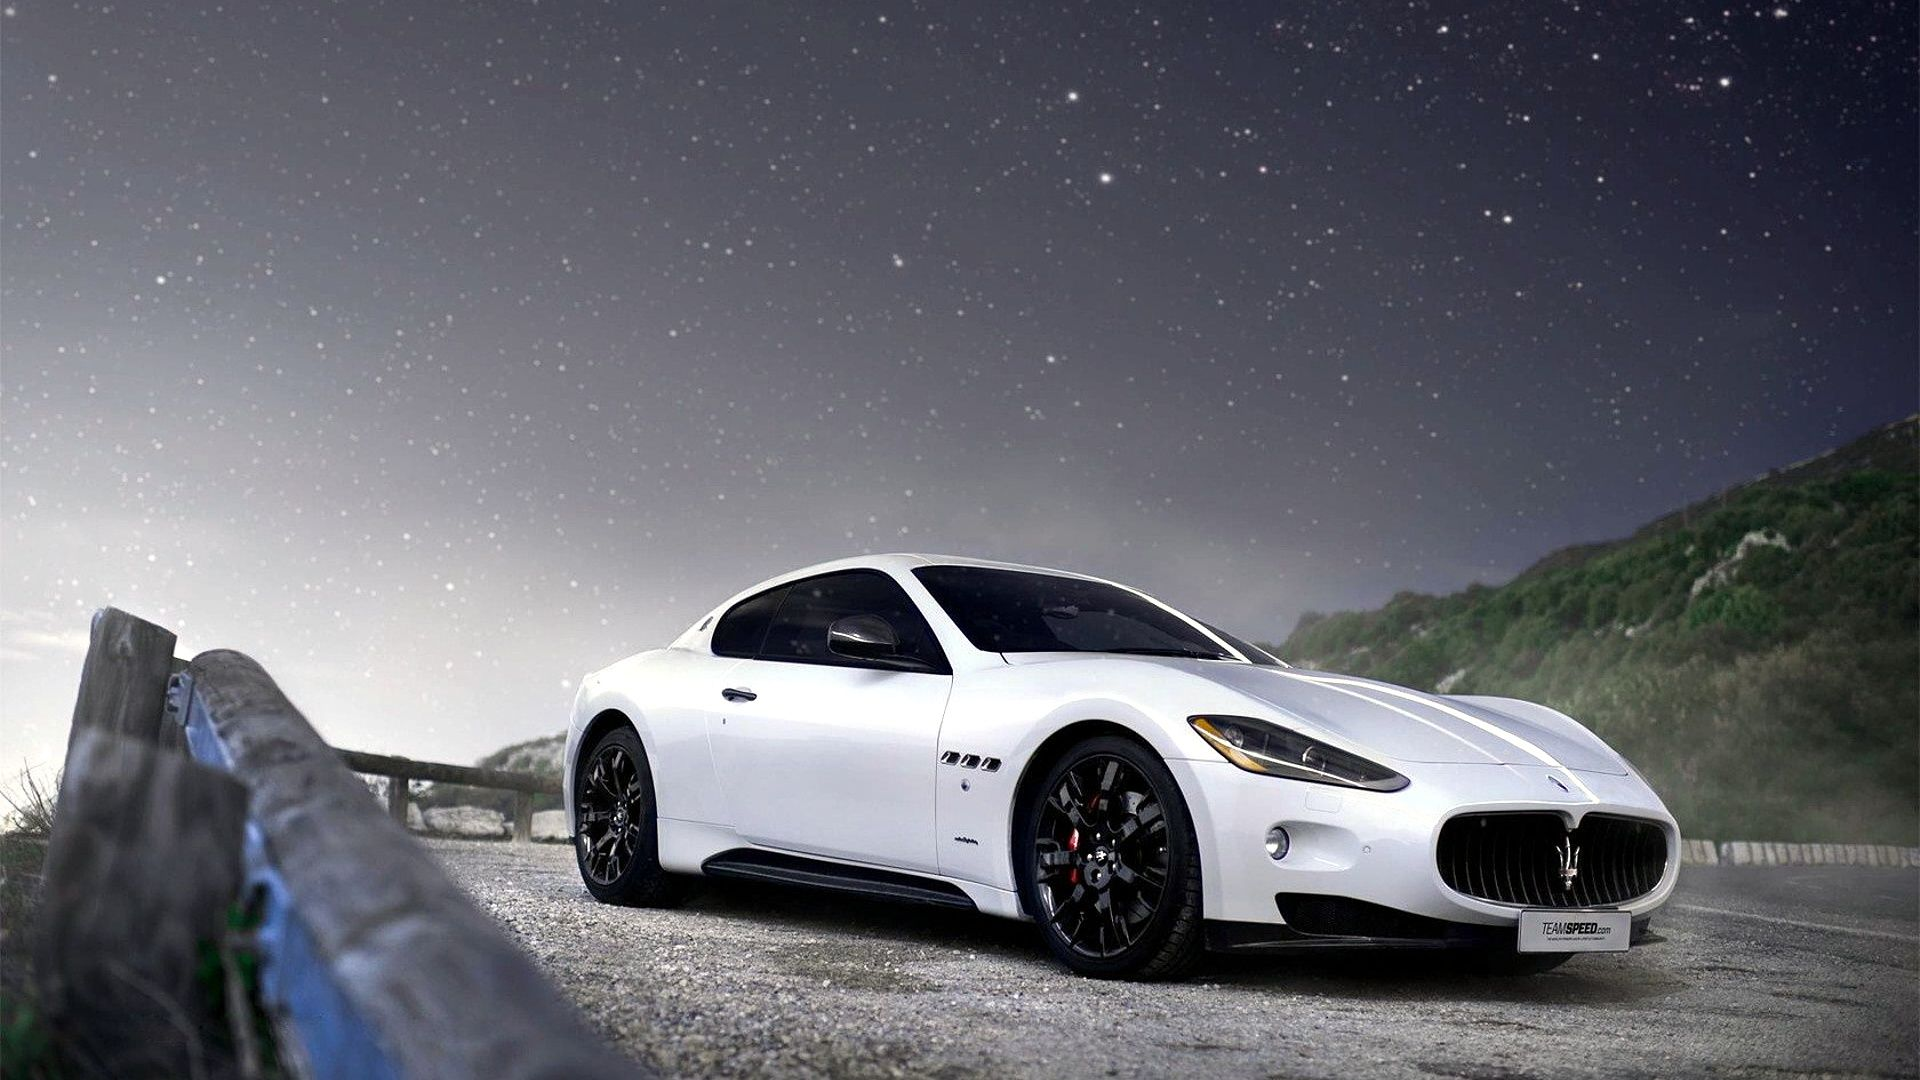 Maserati GranTurismo in white on hd wallpapers from http